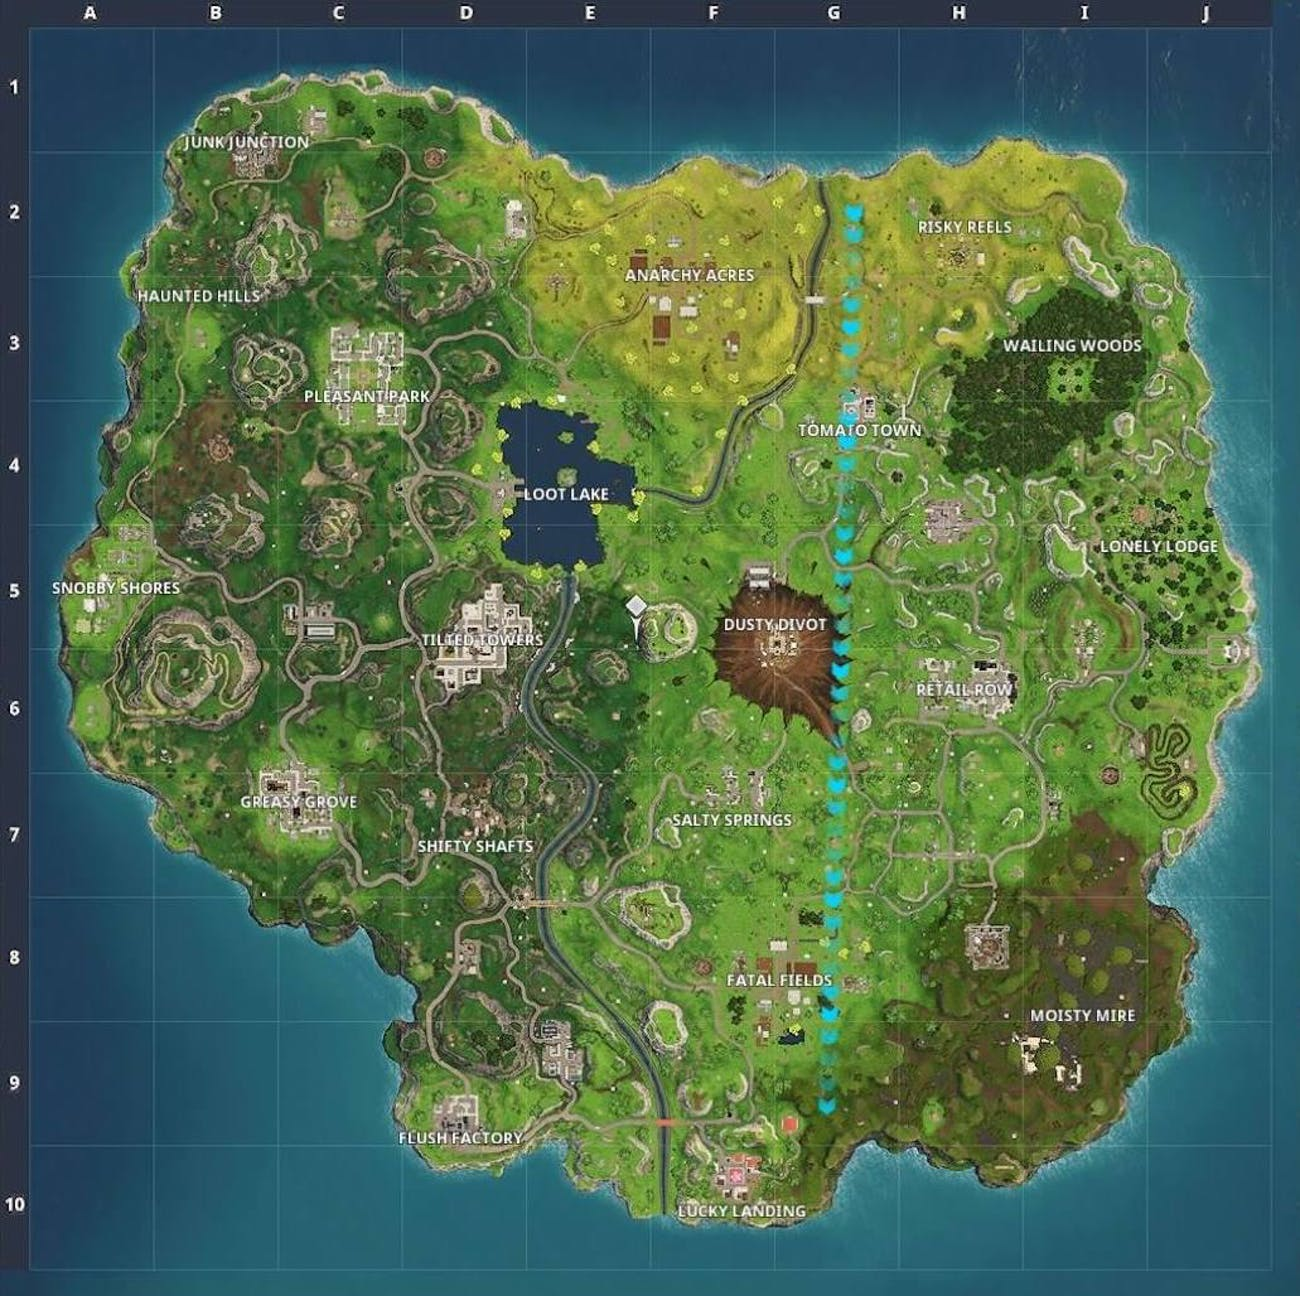 Here's a look at the new 'Fortnite: Battle Royale' map for Season 4, which adds Risky Reels and Dusty Divot after the destruction of Dusty Depot.